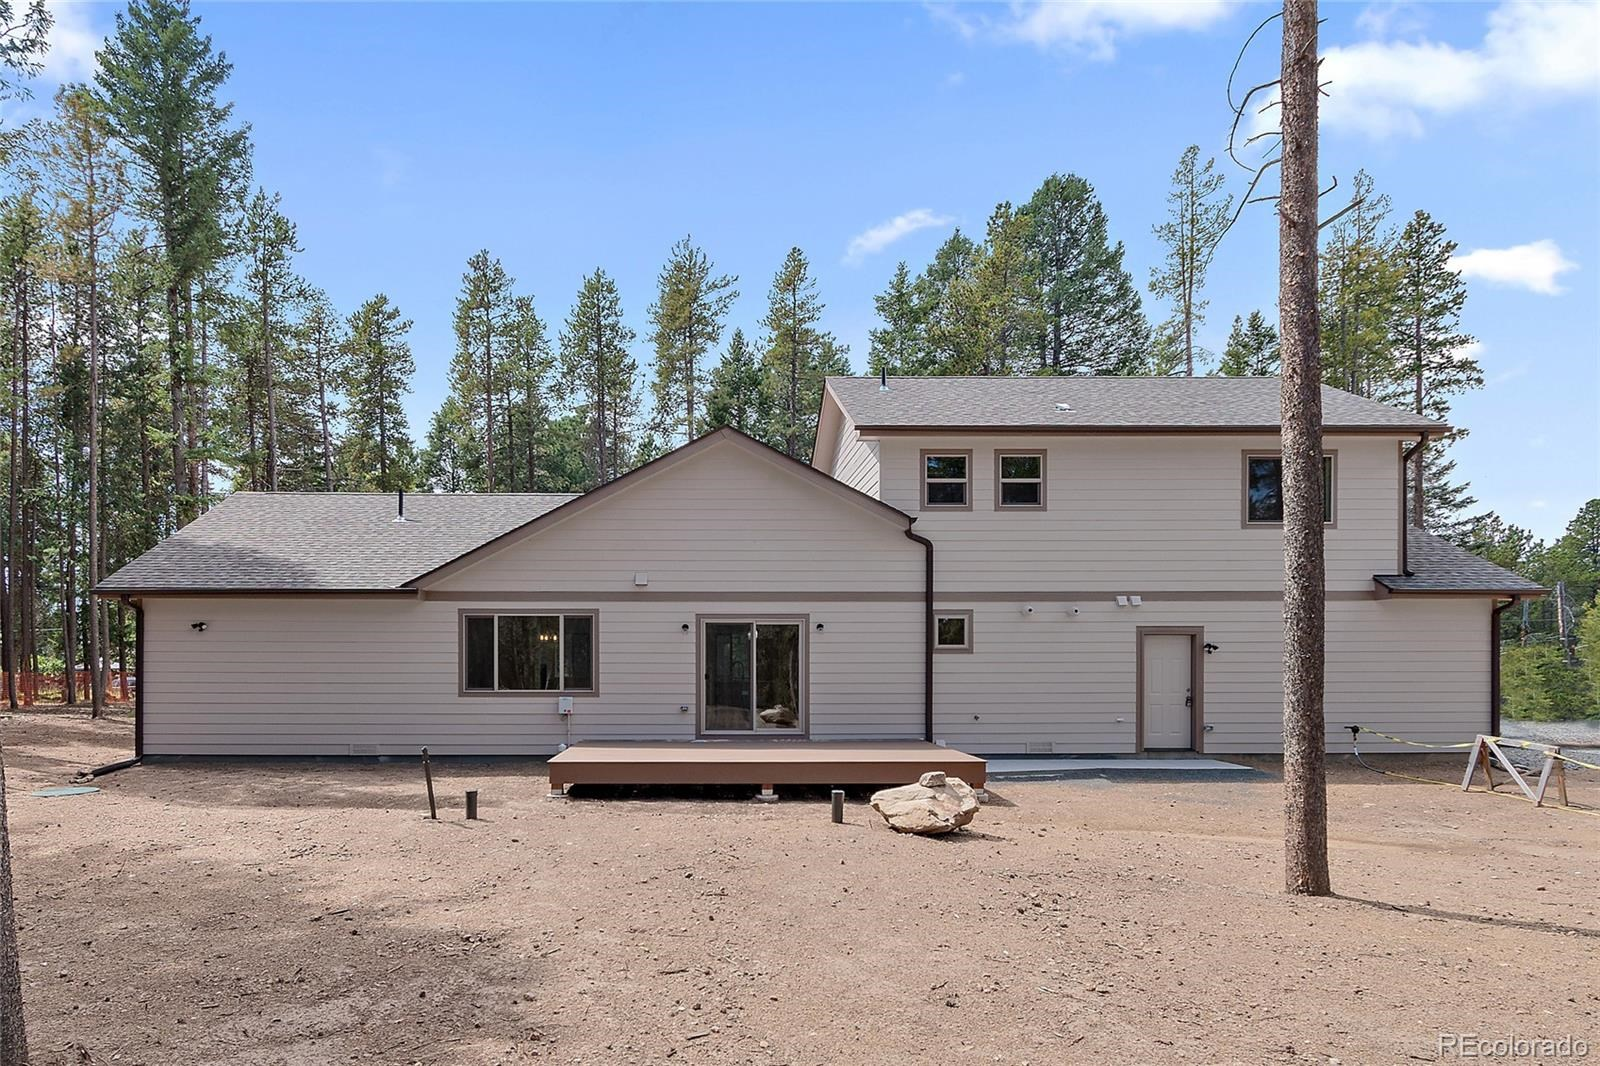 MLS# 3859300 - 27 - 10892 Barker Avenue, Conifer, CO 80433